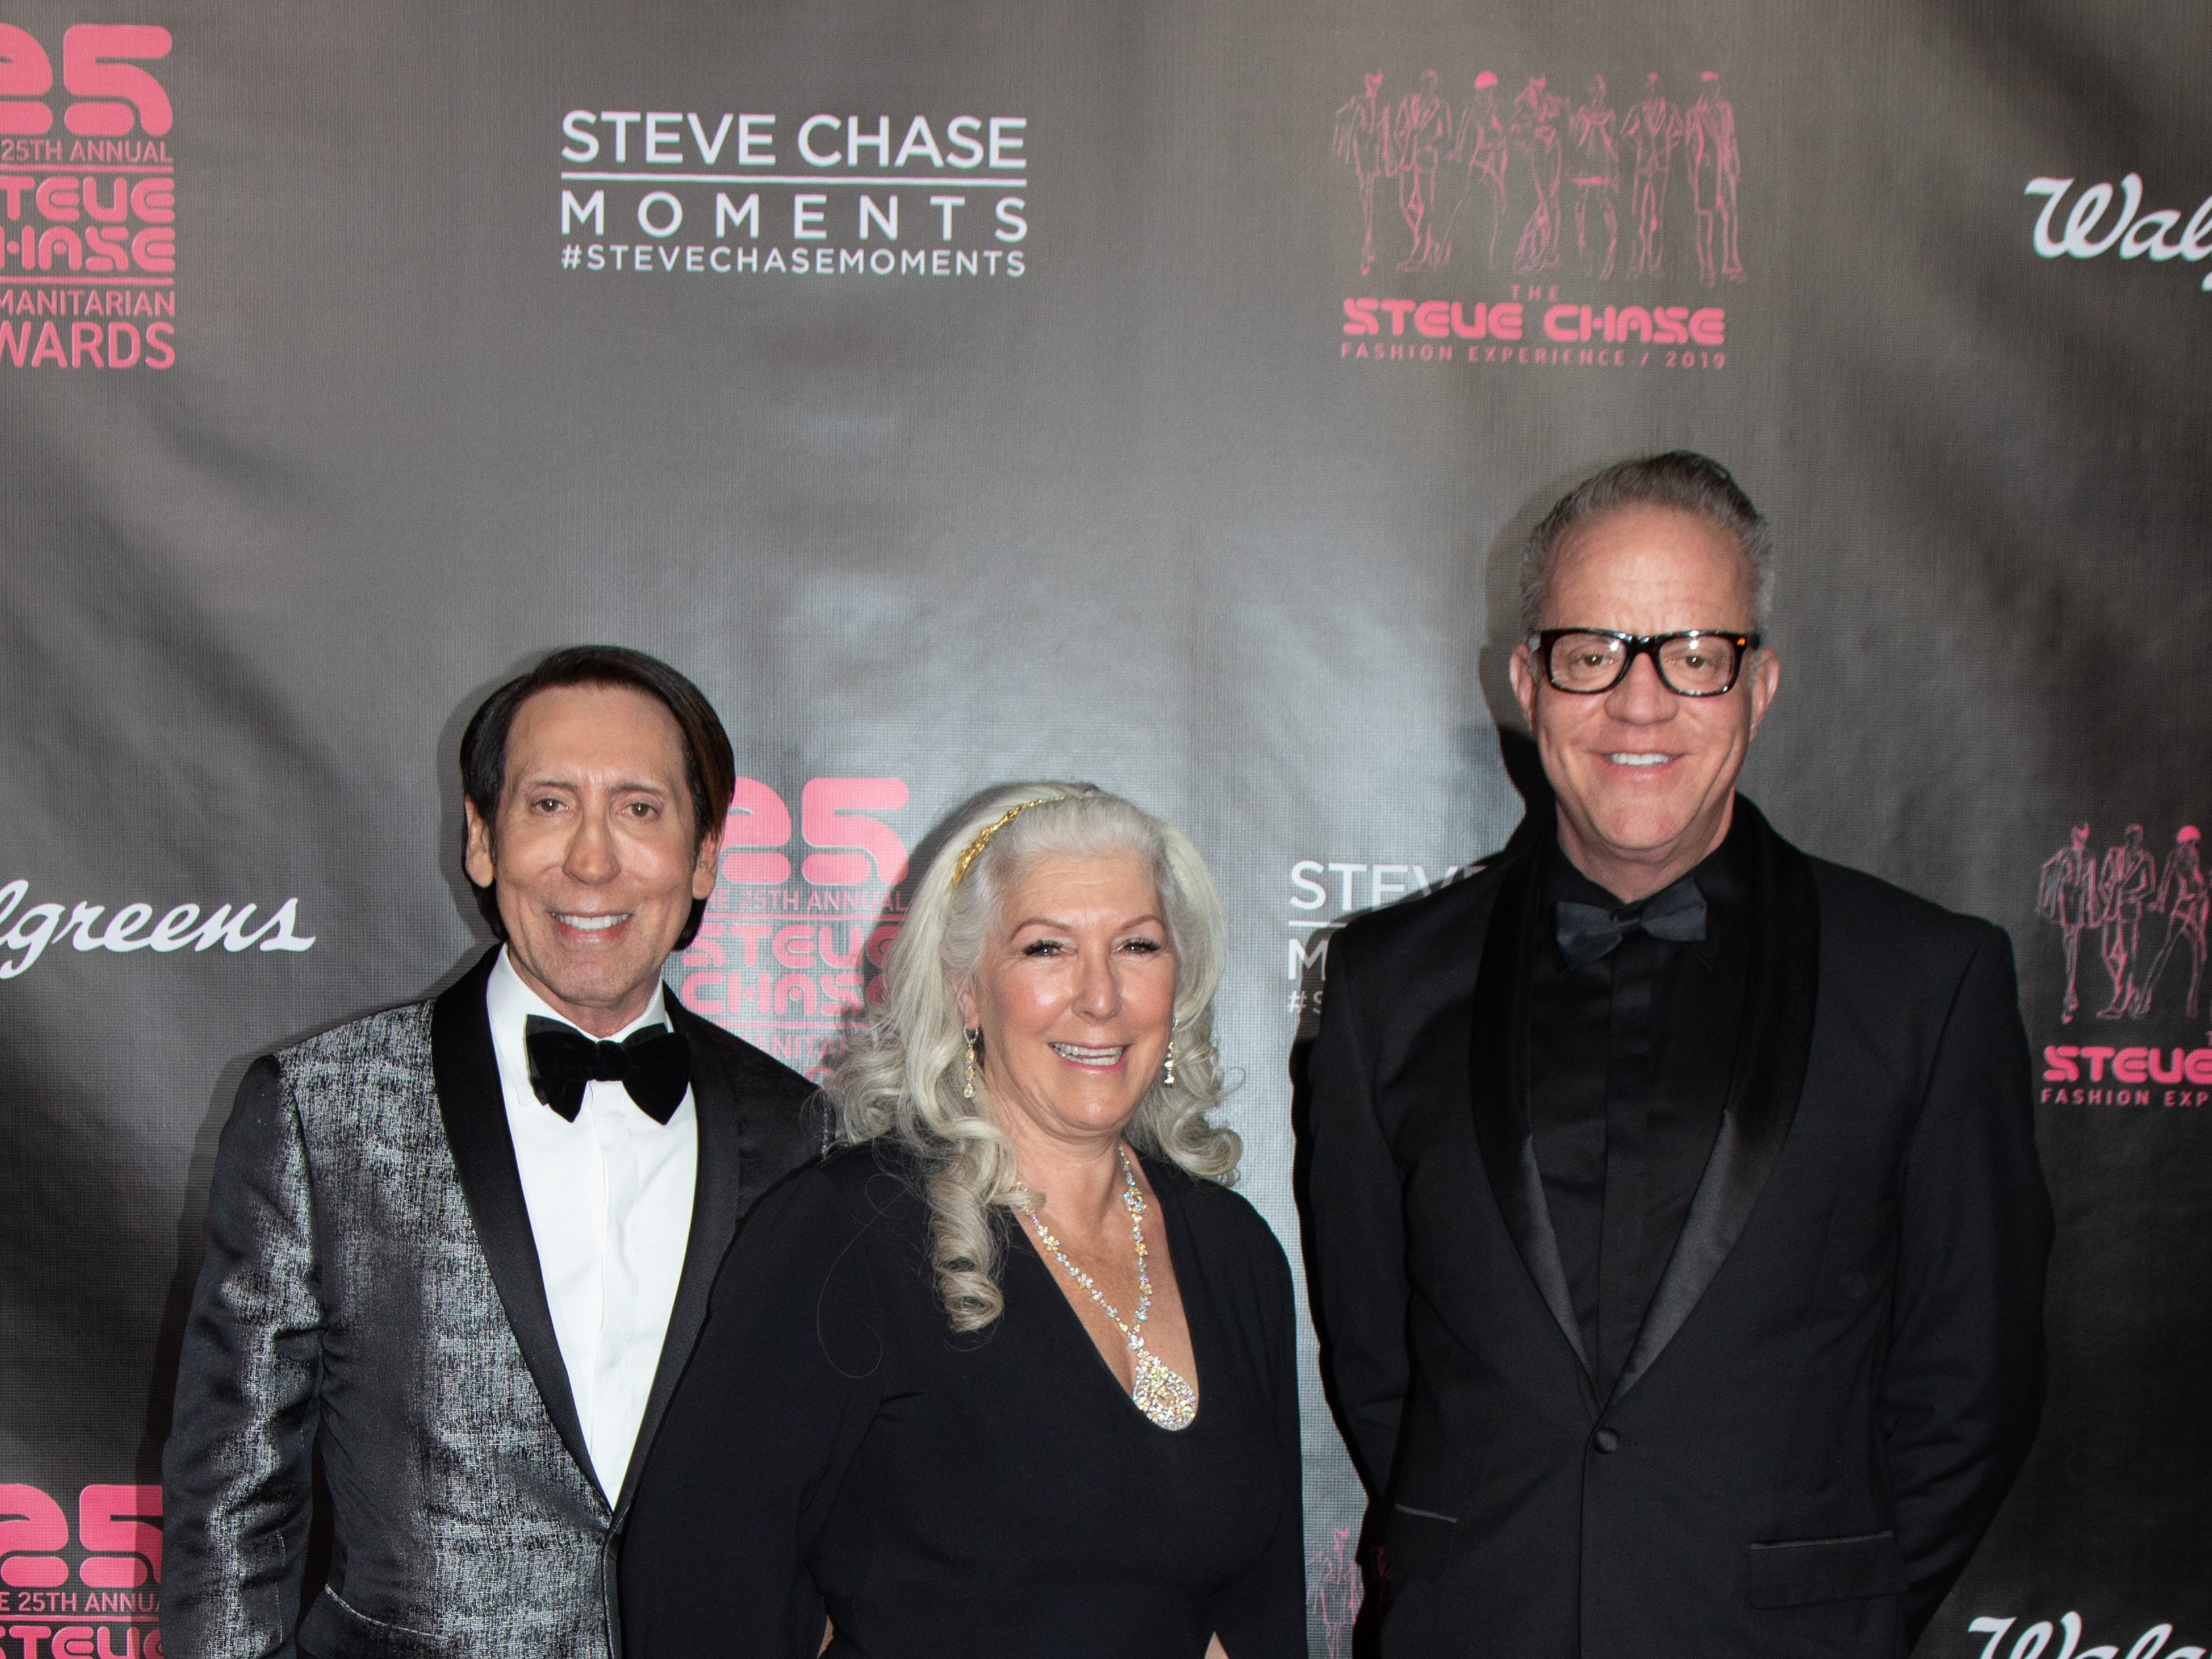 Steve Chase Gala Co-Chairs (left to right) Kevin Bass, Lauri Kibby and Patrick Jordan.